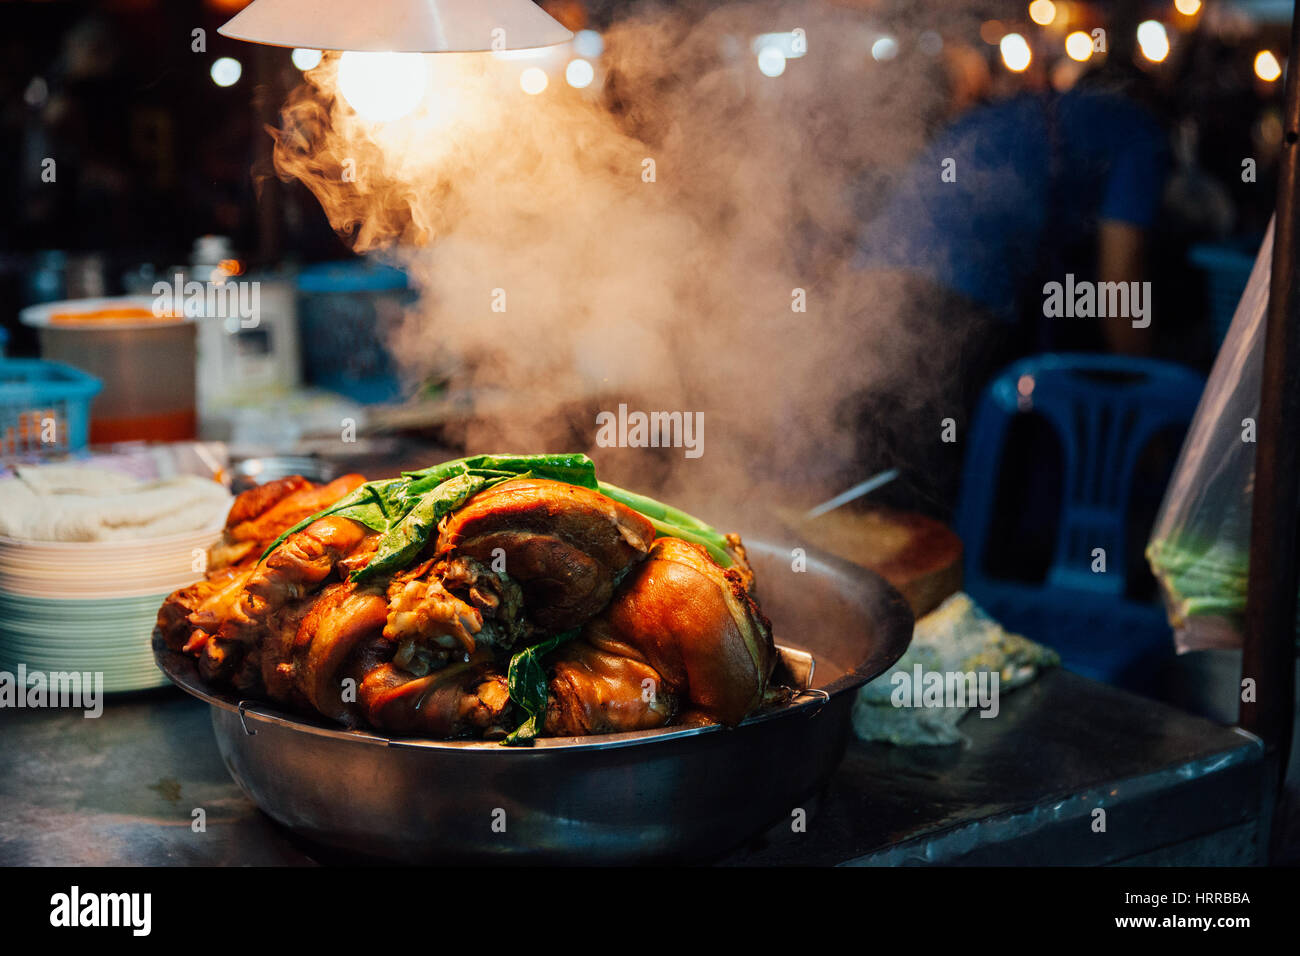 Hot pork cools down at the Saturday Night Market stall in Chiang Mai, Thailand. - Stock Image